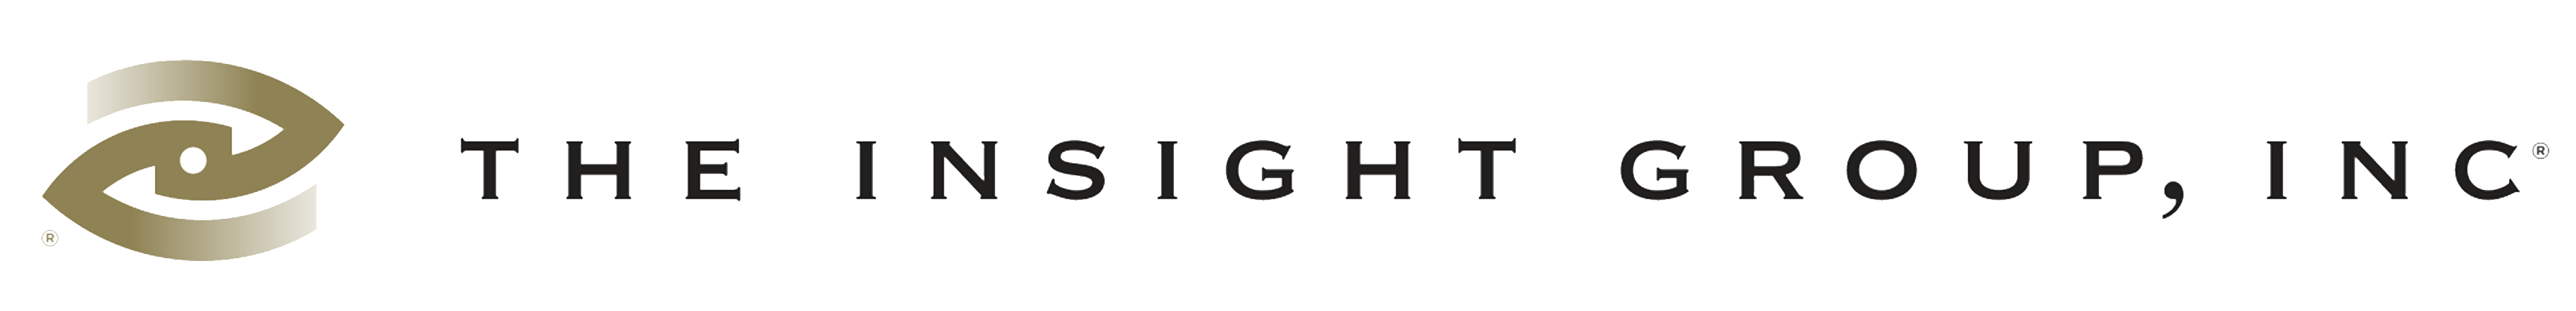 The_Insight_Group_Inc.png